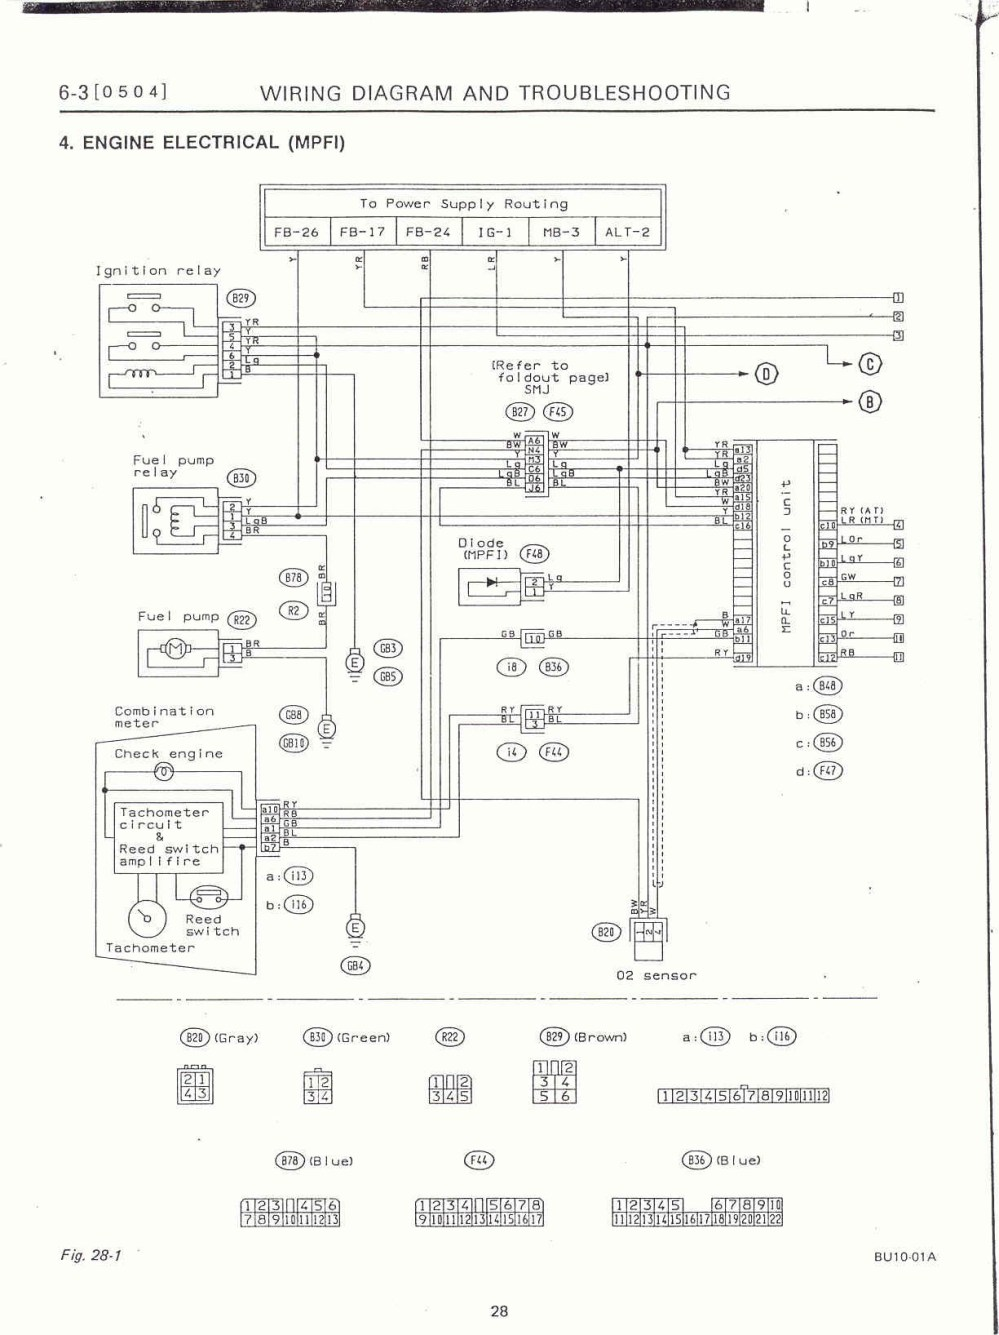 medium resolution of 2000 subaru legacy engine diagram diagram data schema 1992 subaru legacy engine diagram